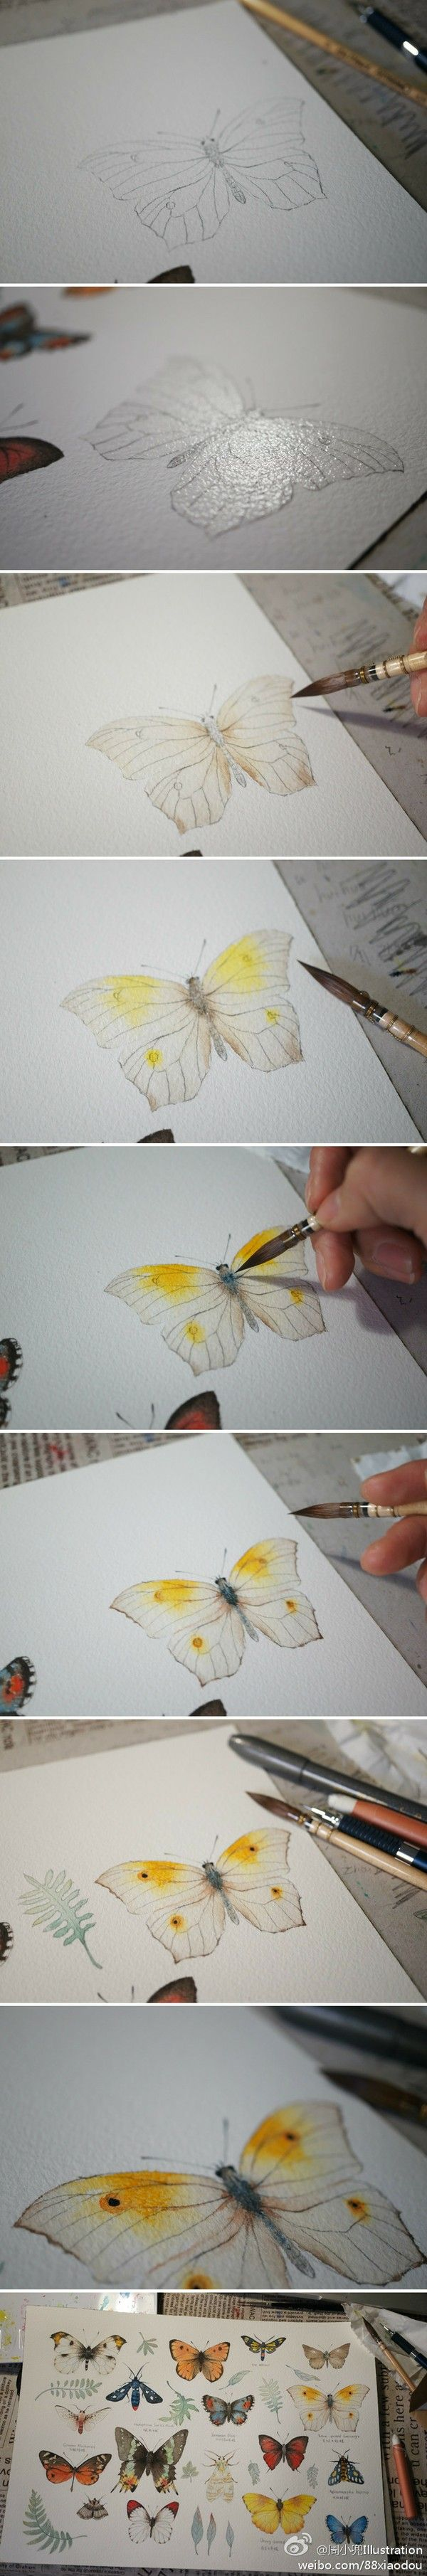 .Painting a butterfly in watercolor.